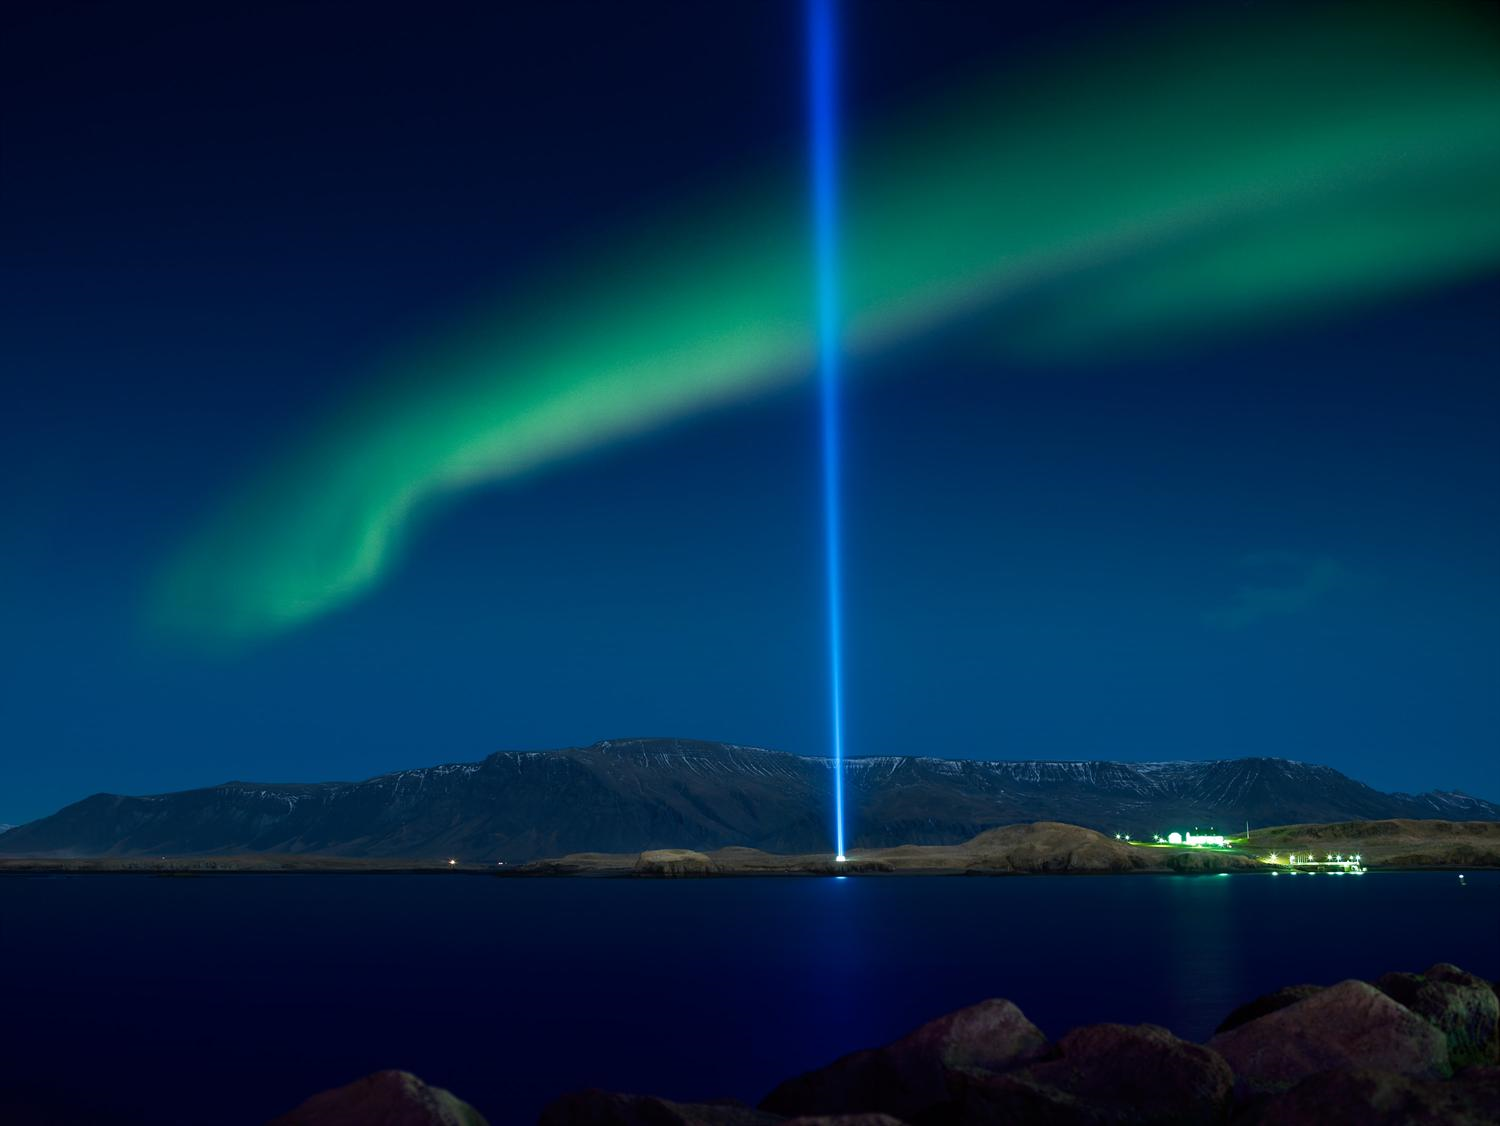 Northern lights over Reykjavík and Imagine Peace Tower